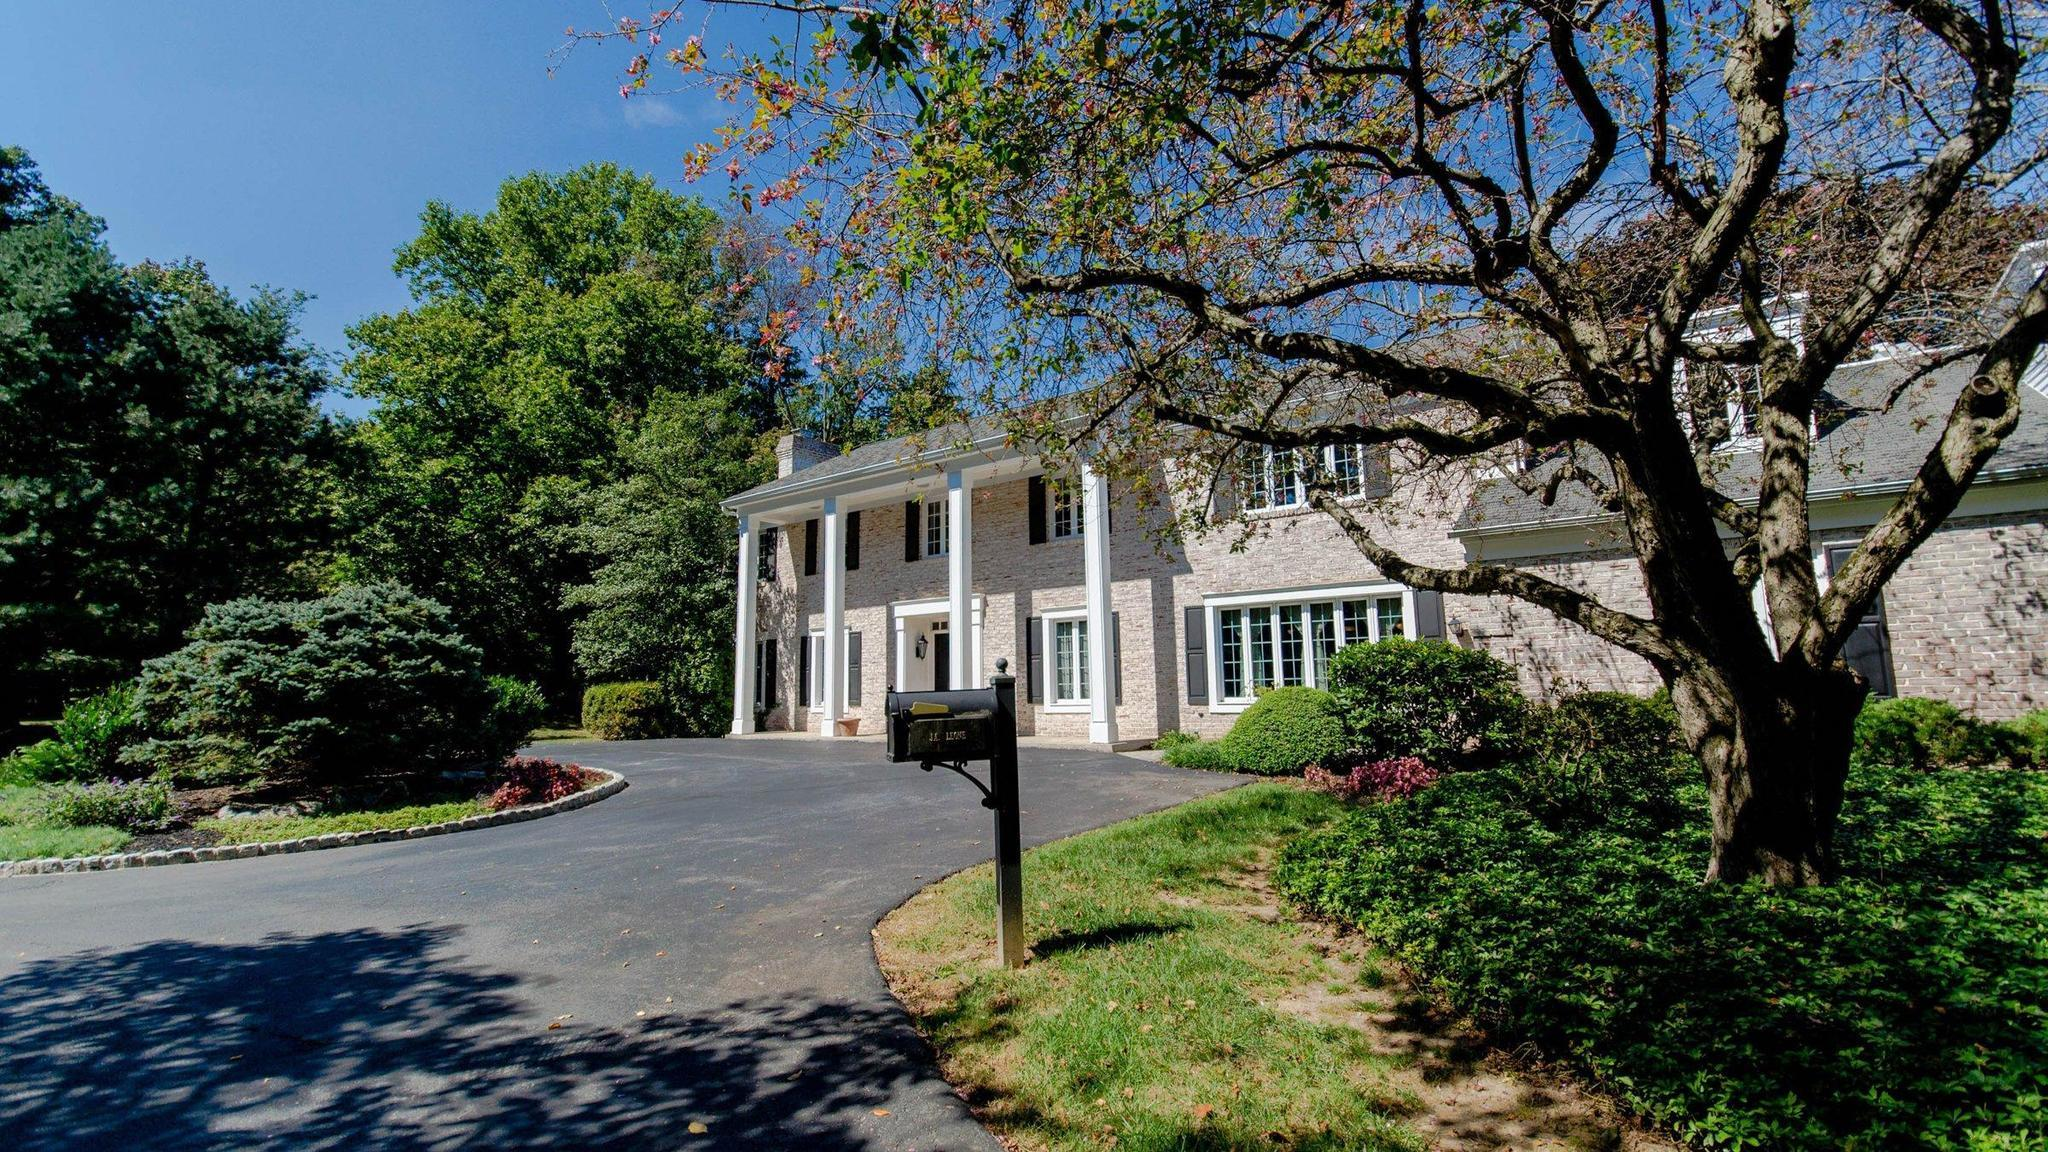 Amazing The 20 Most Expensive Homes For Sale In The Lehigh Valley   Lehigh Valley  Business Cycle